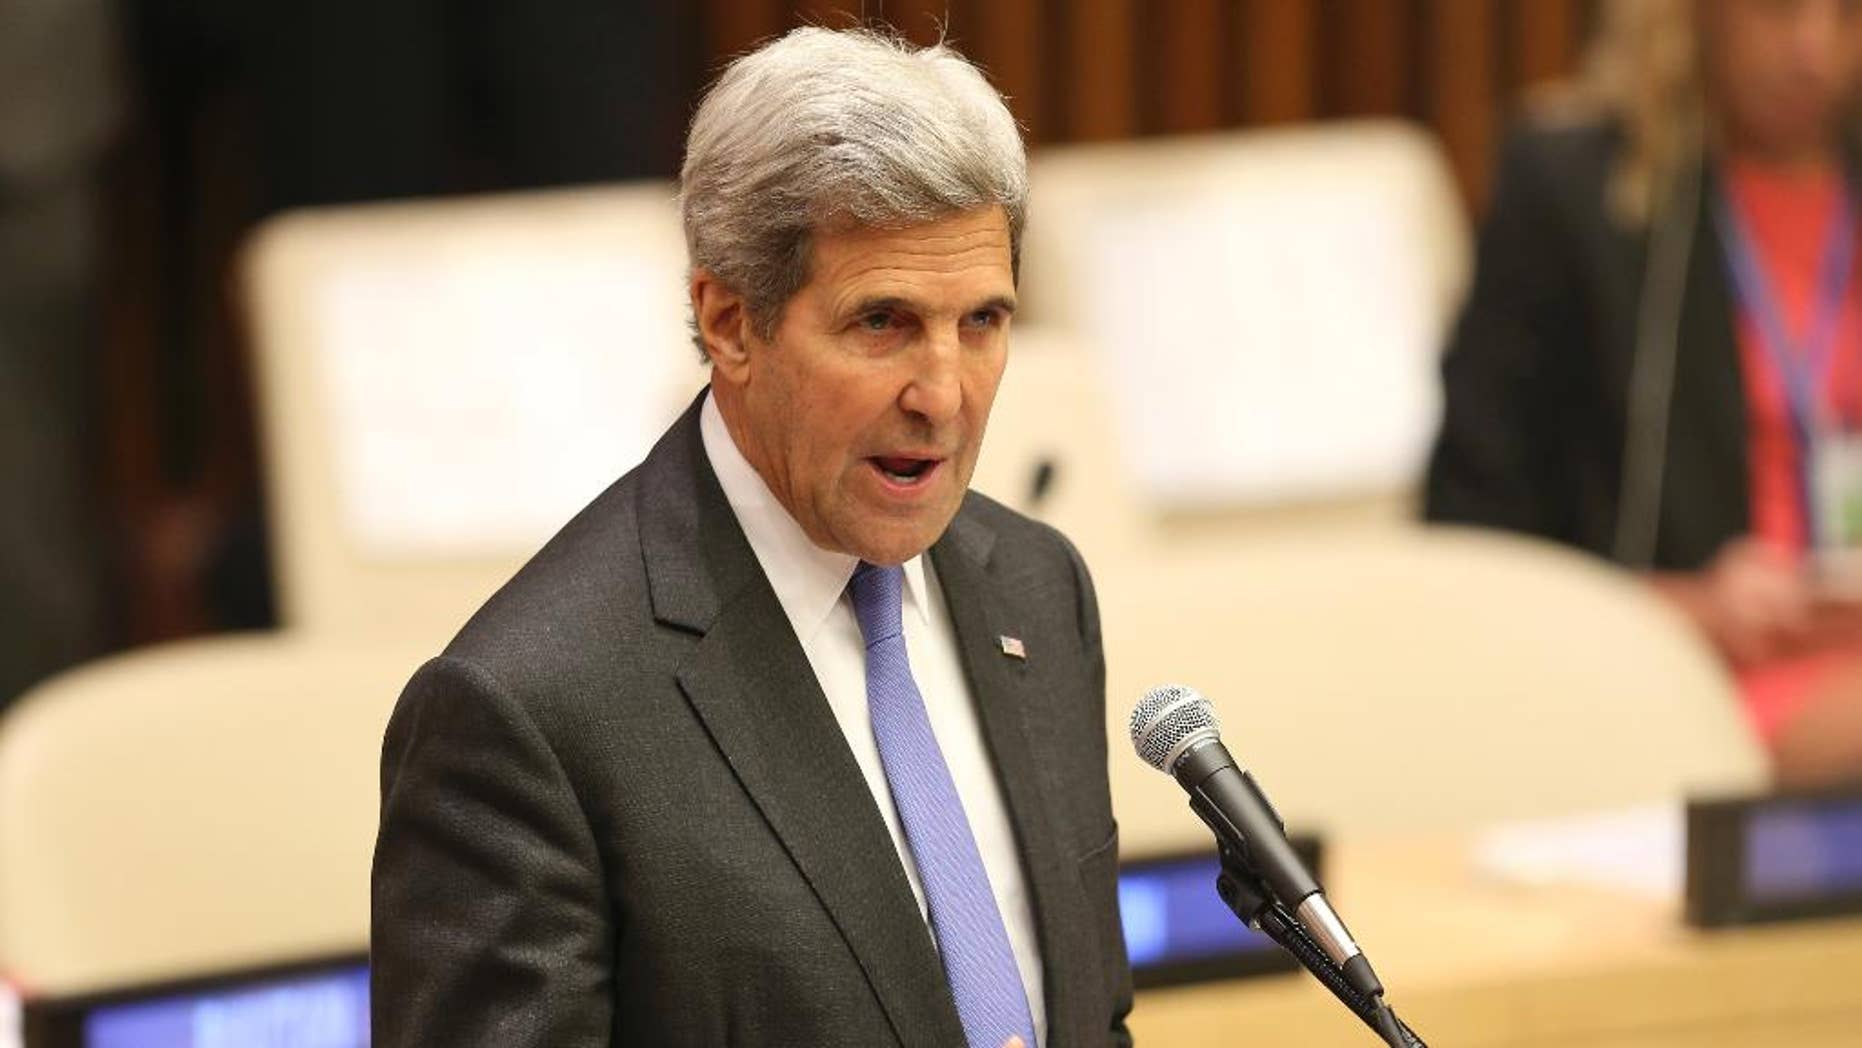 United States Secretary of State John Kerry speaks during the Summit for Refugees and Migrants at U.N. headquarters, Monday, Sept. 19, 2016. (AP Photo/Seth Wenig)